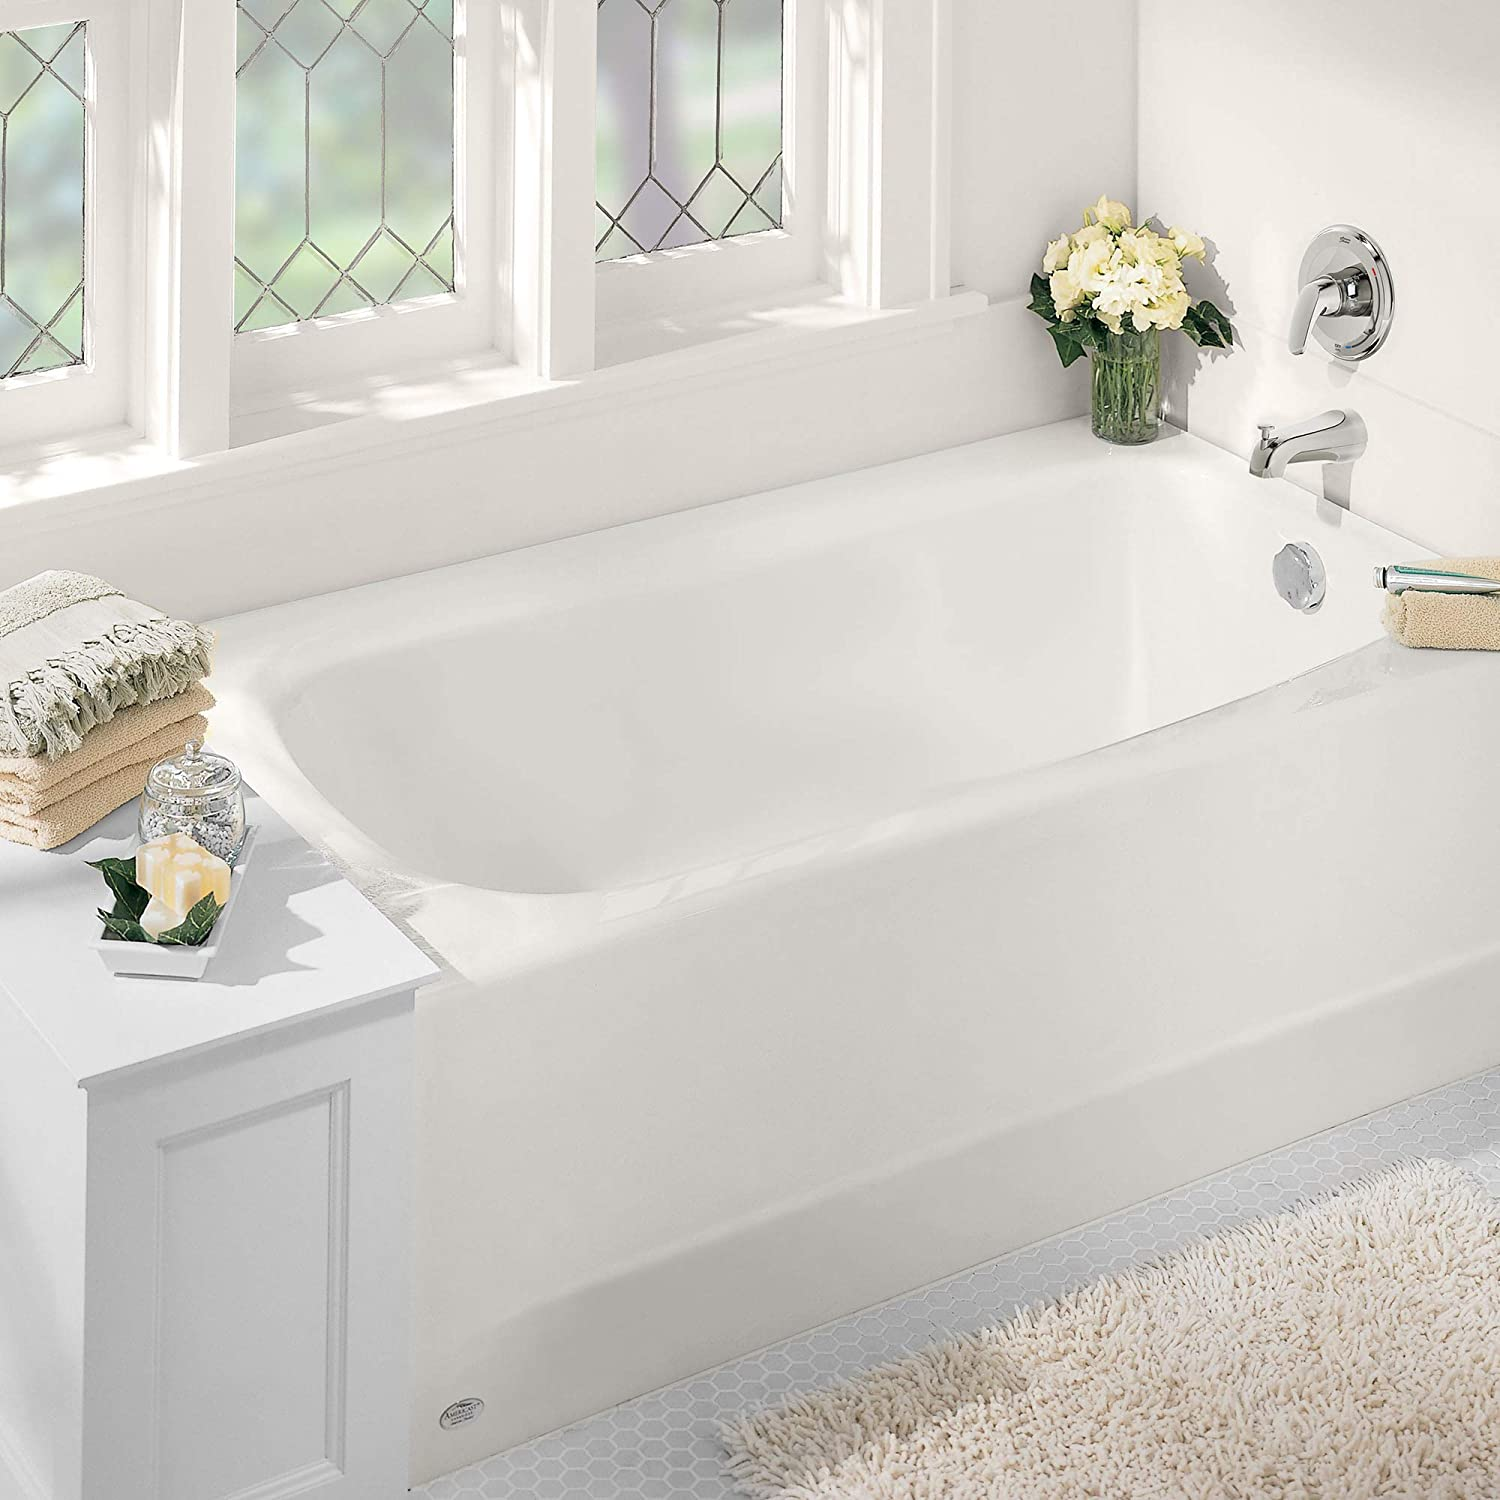 What are the Best Bathtubs for Seniors